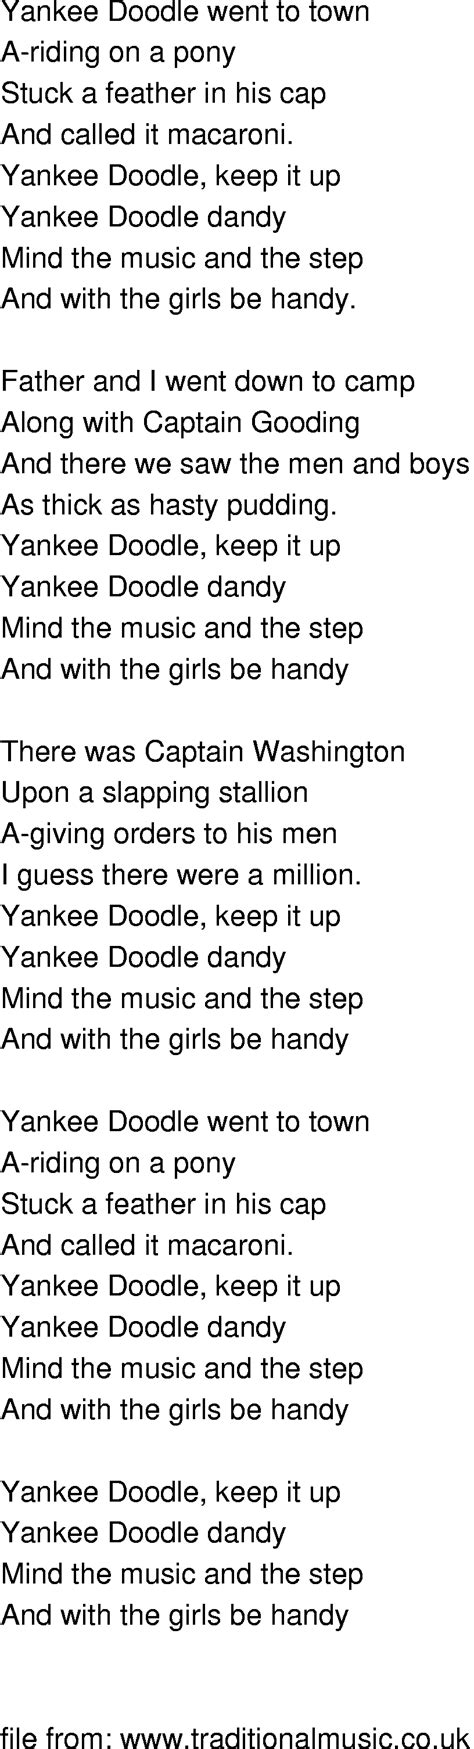 doodlebug lyrics prepositional phrase song yankee doodle images